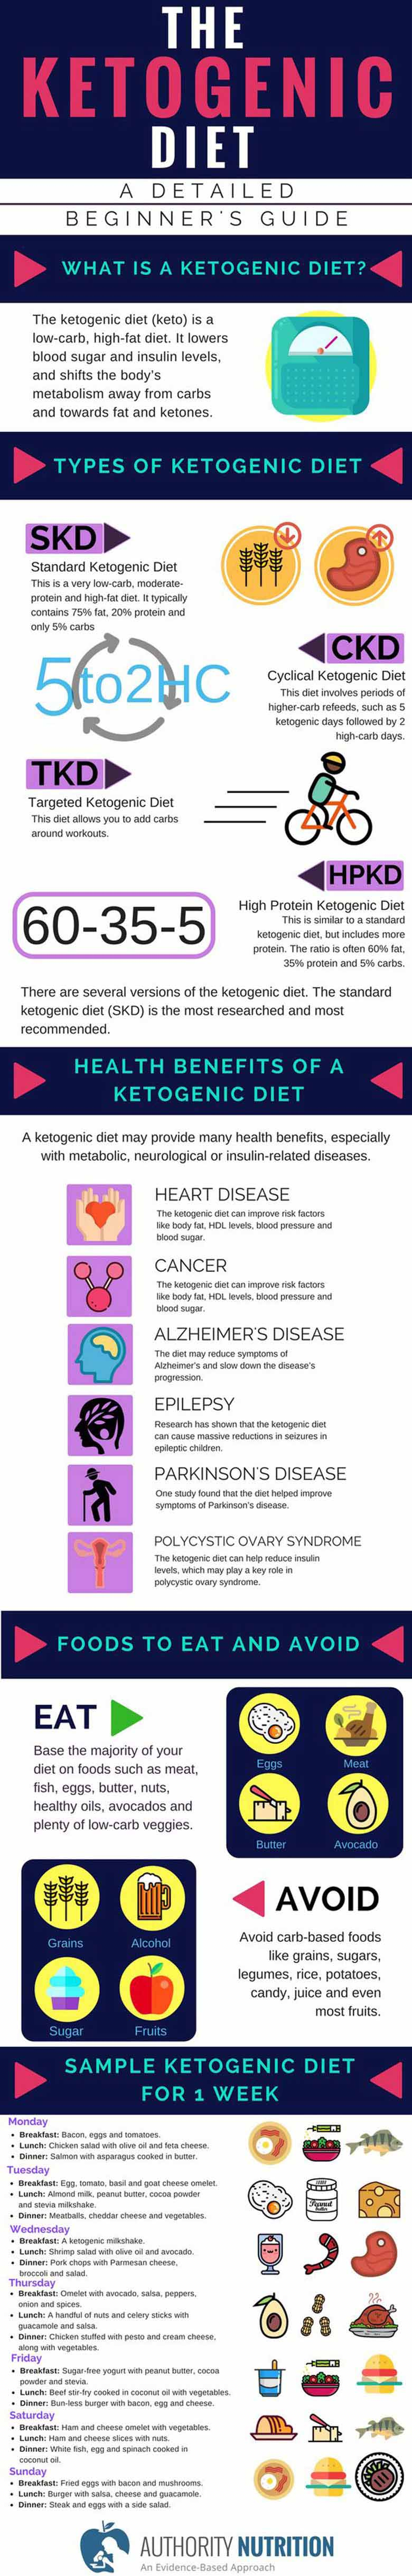 The keto diet is a low-carb, high-fat diet. It lowers blood sugar and insulin levels, and shifts the body's metabolism away from carbs and towards fat and ketones. #ketodietforbeginners